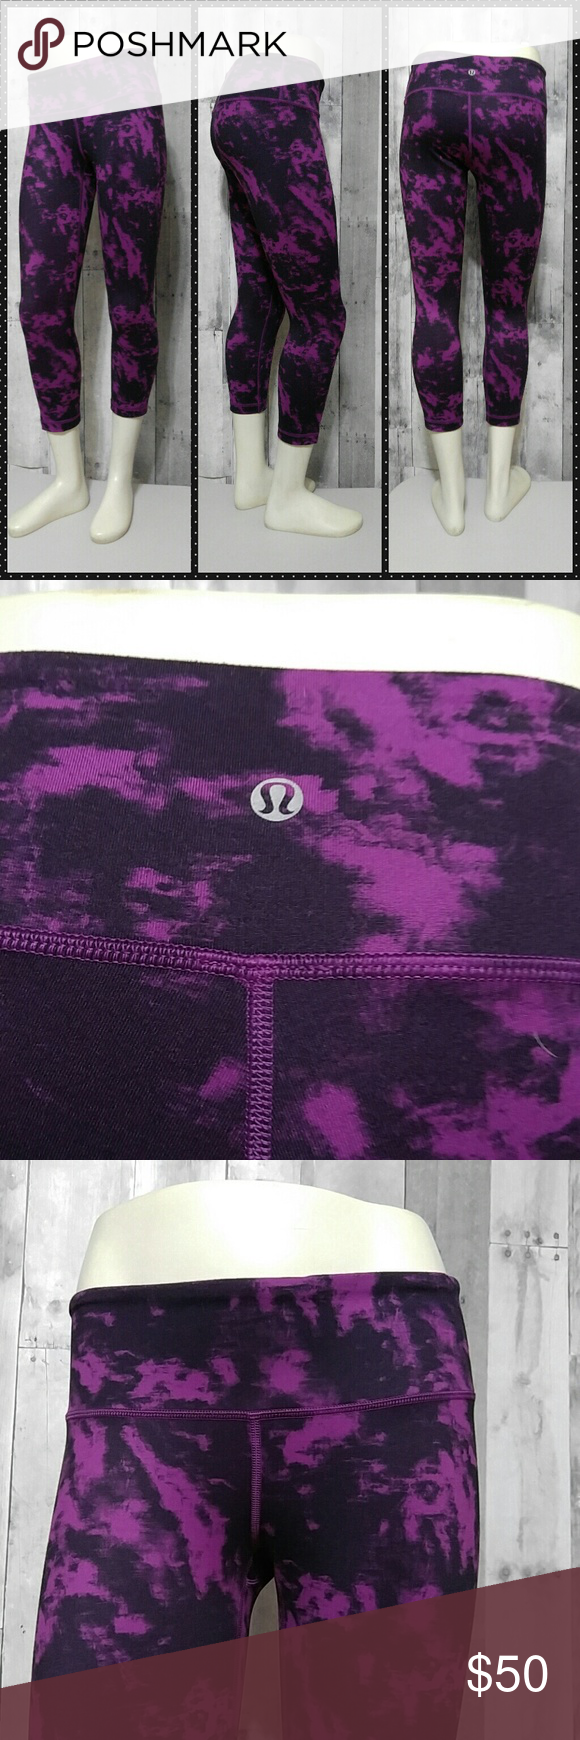 """Lululemon Wunder Under Crop Leggings 6 Purple/ pink Lululemon Wunder Under Crop length leggings Size 6  No rip tag, size dot in stash pocket in the waistband Gently pre owned no stains no holes no pilling  Color is blooming pixie raspberry  They are a pinkish purple color   22"""" inseam 13"""" across waist flat  No trades please lululemon athletica Pants Leggings"""